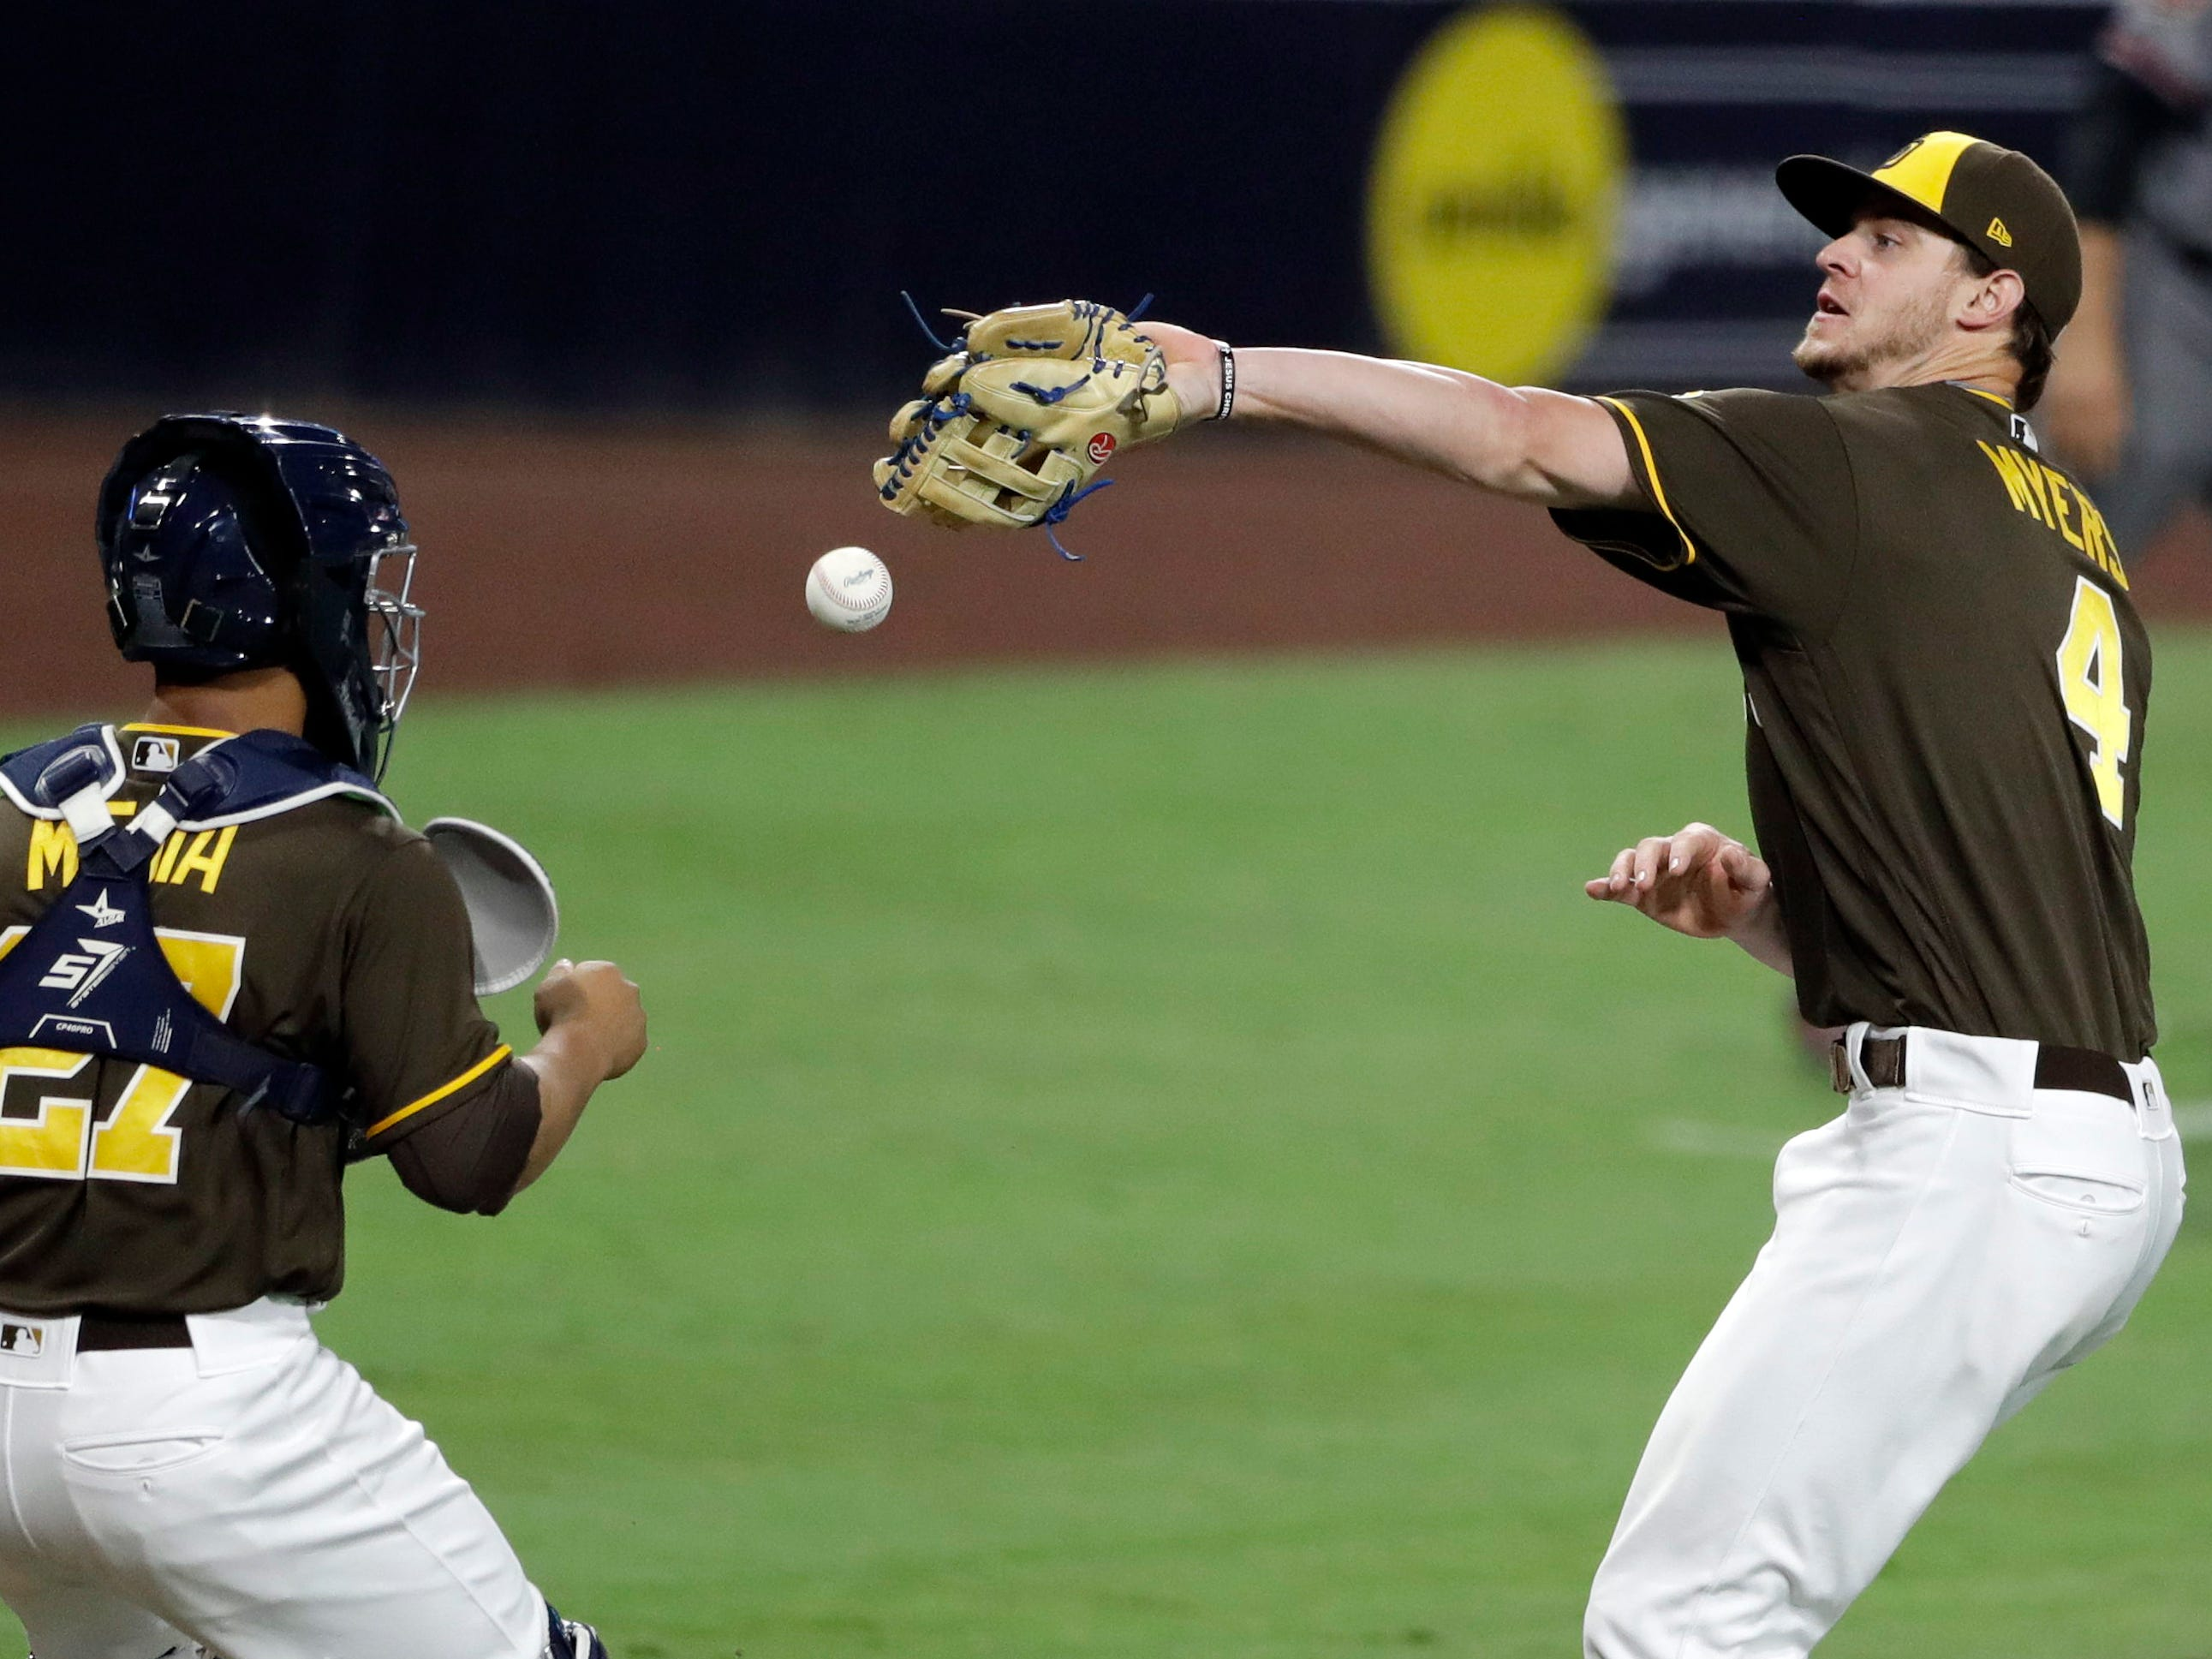 San Diego Padres third baseman Wil Myers, right, misses the catch on a pop bunt by Arizona Diamondbacks' Patrick Corbin as catcher Francisco Mejia (27) watches during the second inning of a baseball game Friday, Sept. 28, 2018, in San Diego. A runner was forced at third, and Corbin was safe.